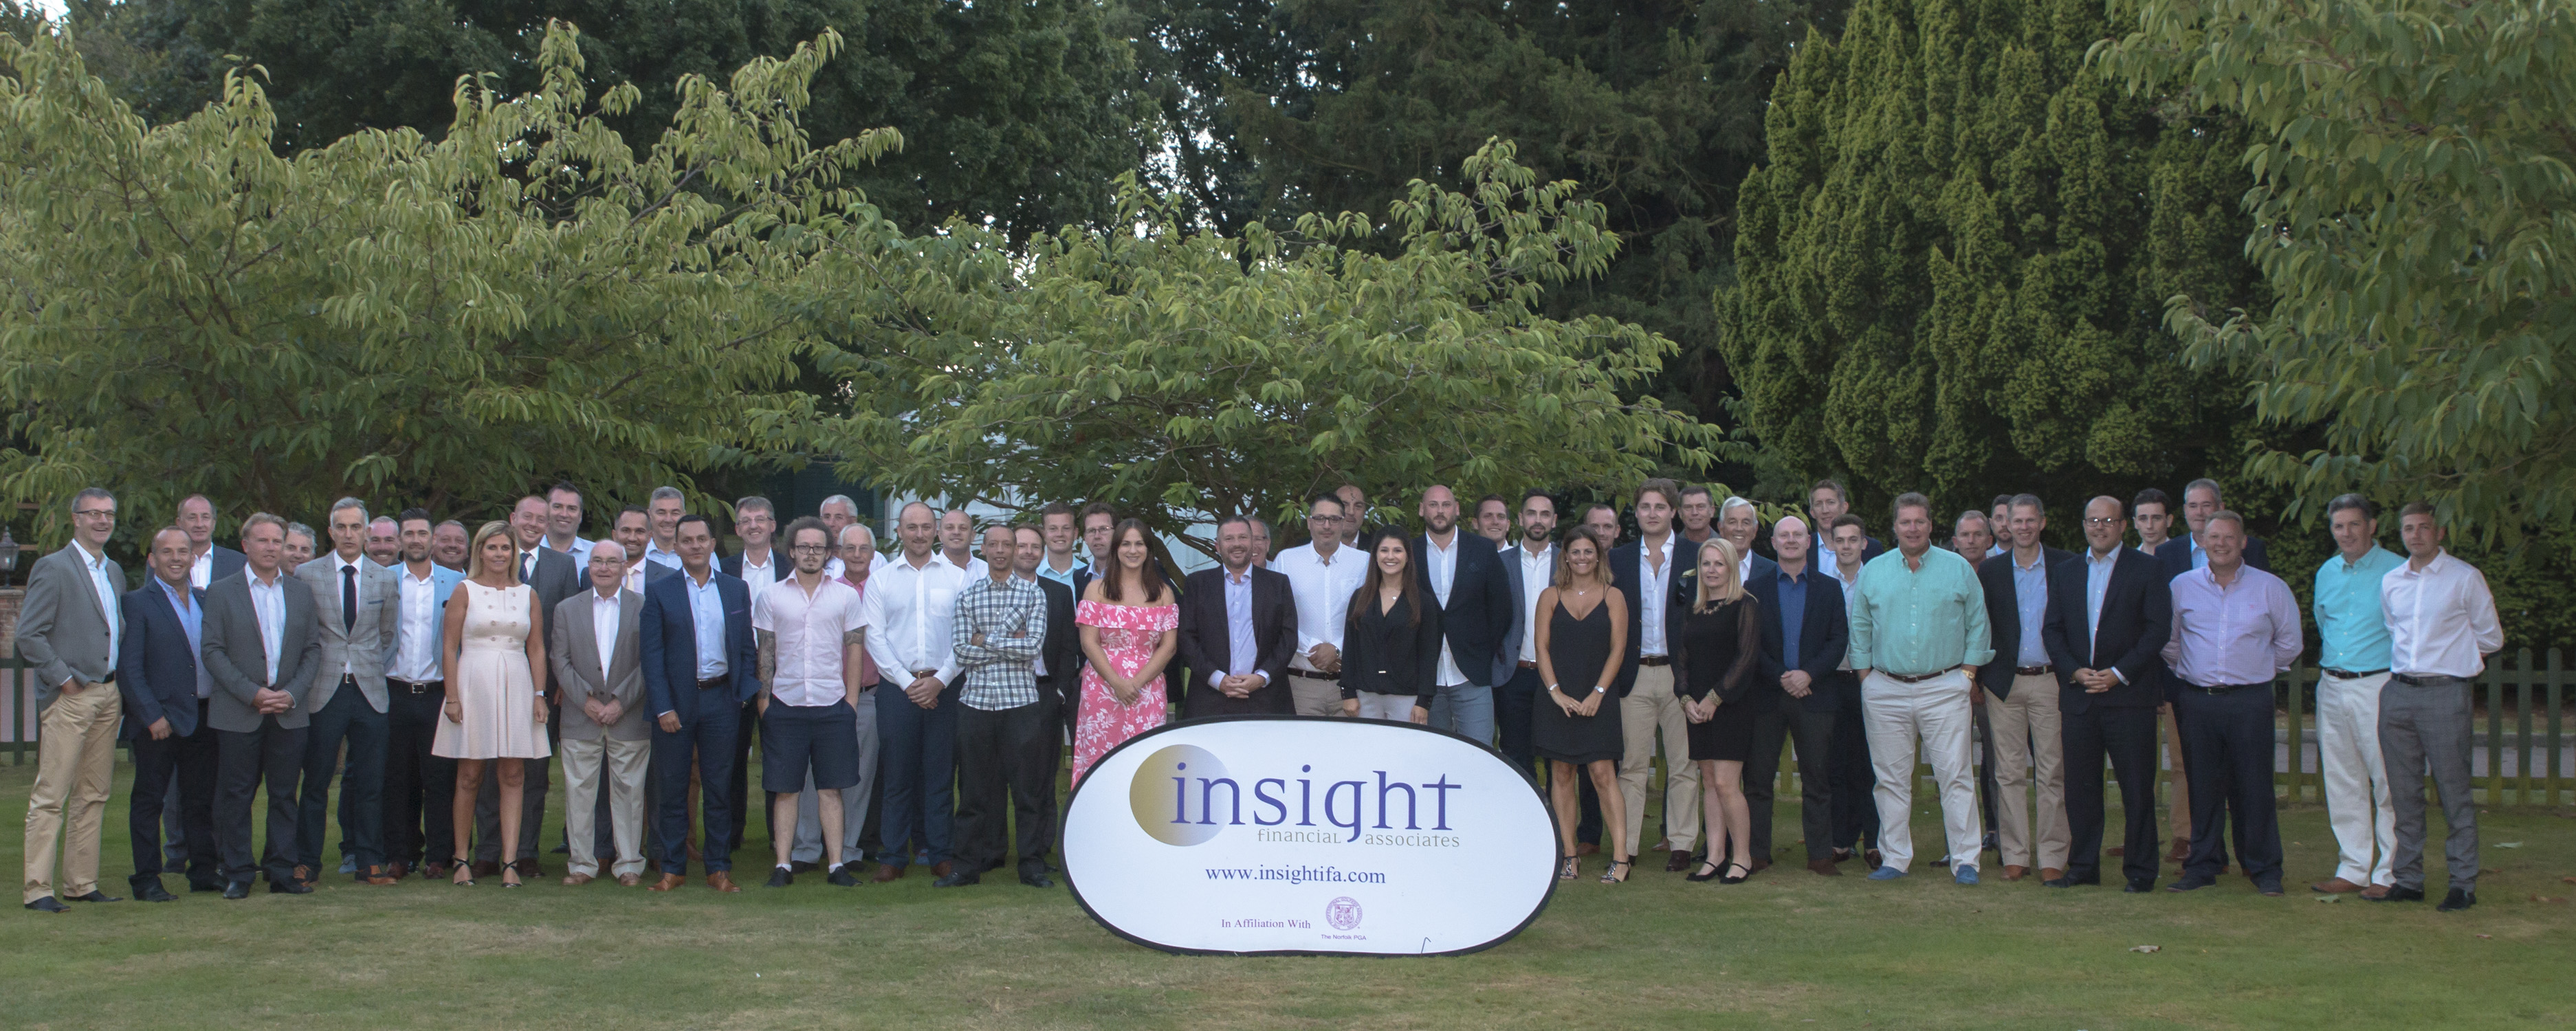 Insight Charity Golf Day-83